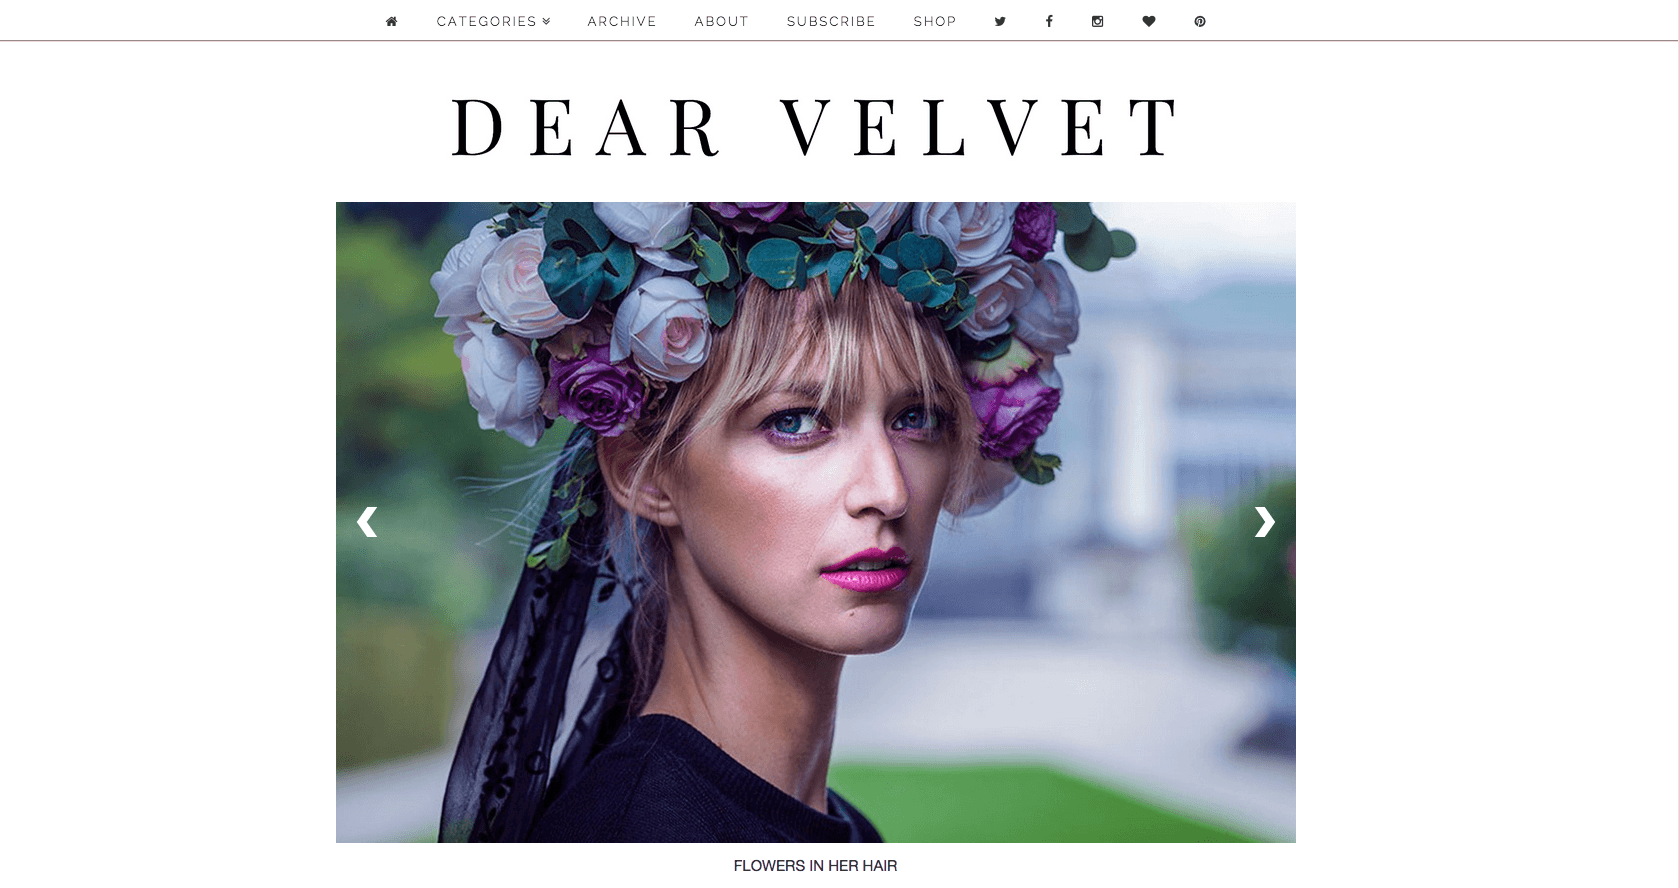 Flower in the Hair, photography editorial on Dear Velvet London